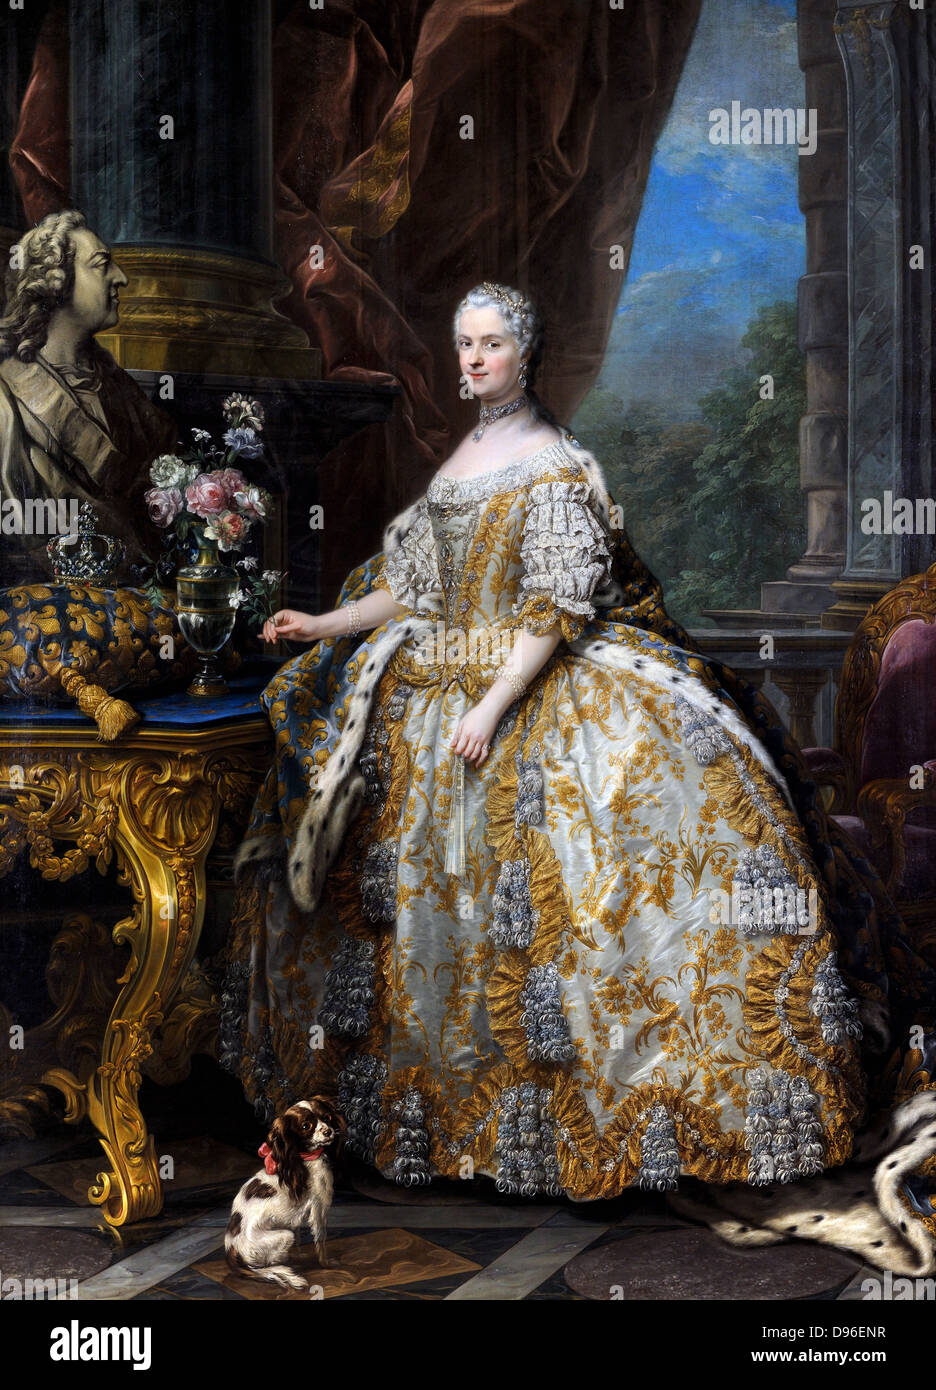 Painting of Marie Leszczinska Queen of France (1703-1768). By Charles-André van Loo, 1747. Oil on canvas. On - Stock Image